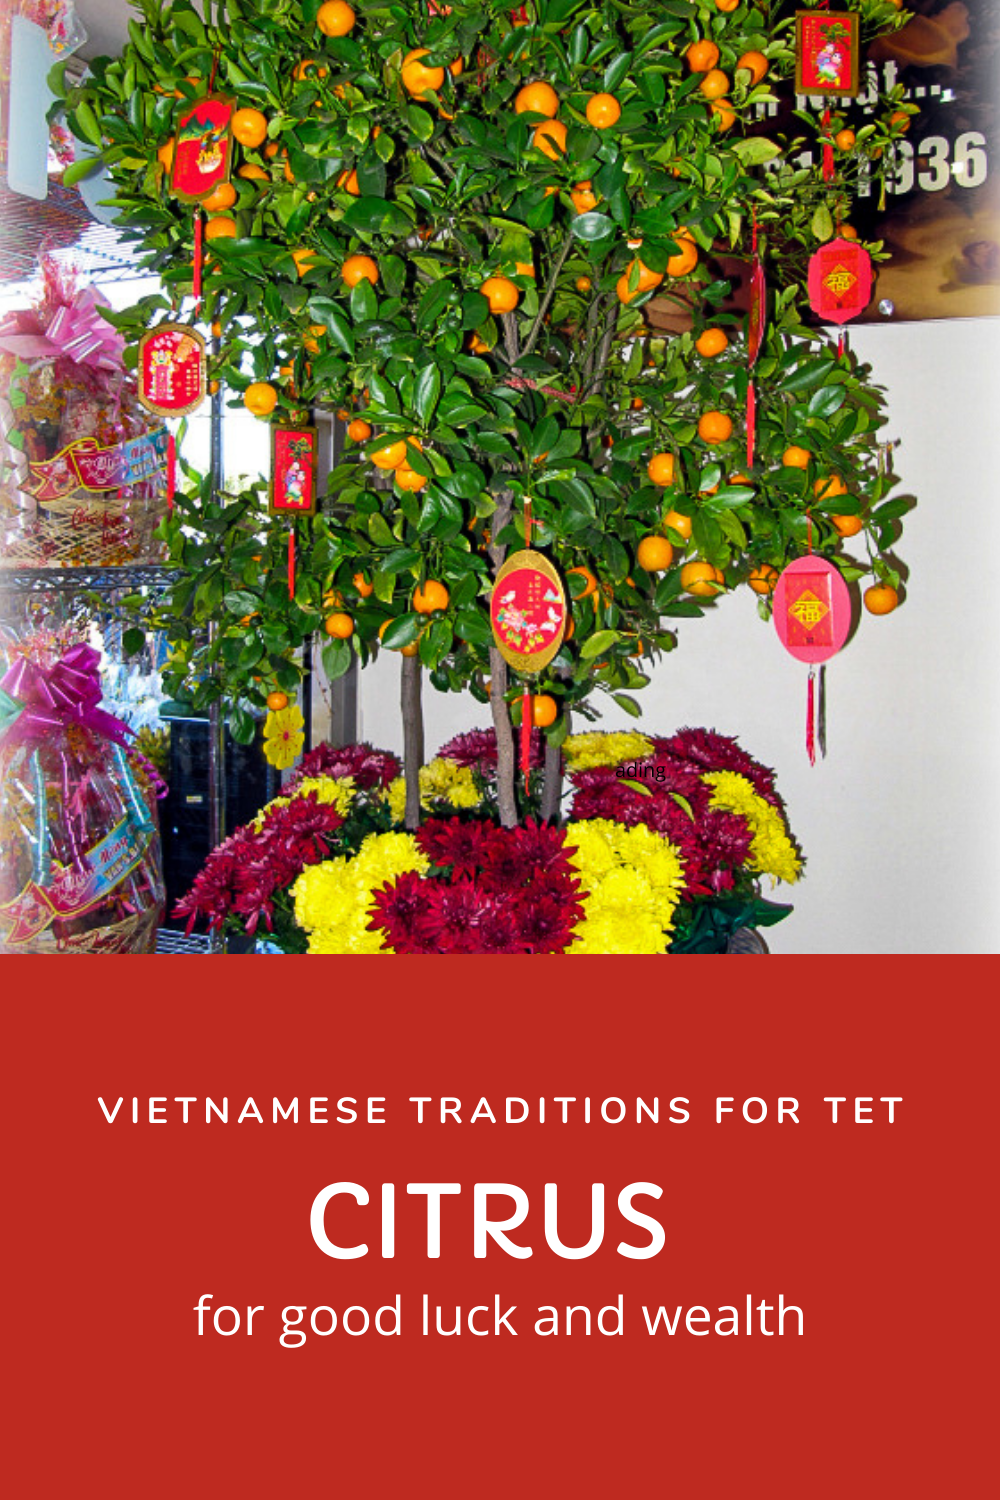 Lunar New Year tradition, citrus